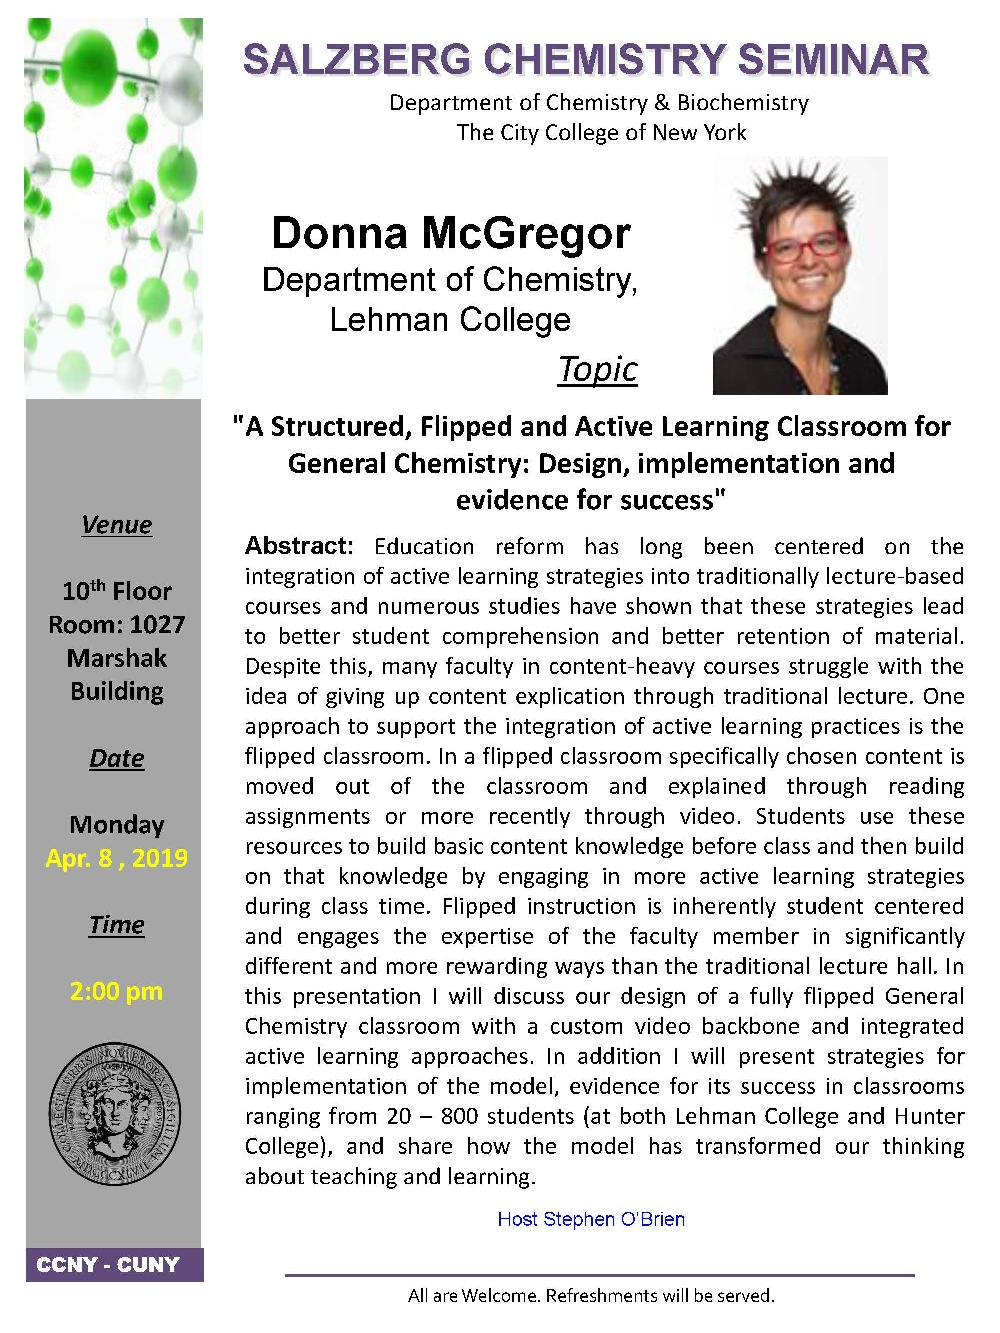 Monday April 8th - Salzberg Chemistry Seminar Series Presented by IDEALS Faculty, Donna McGregor